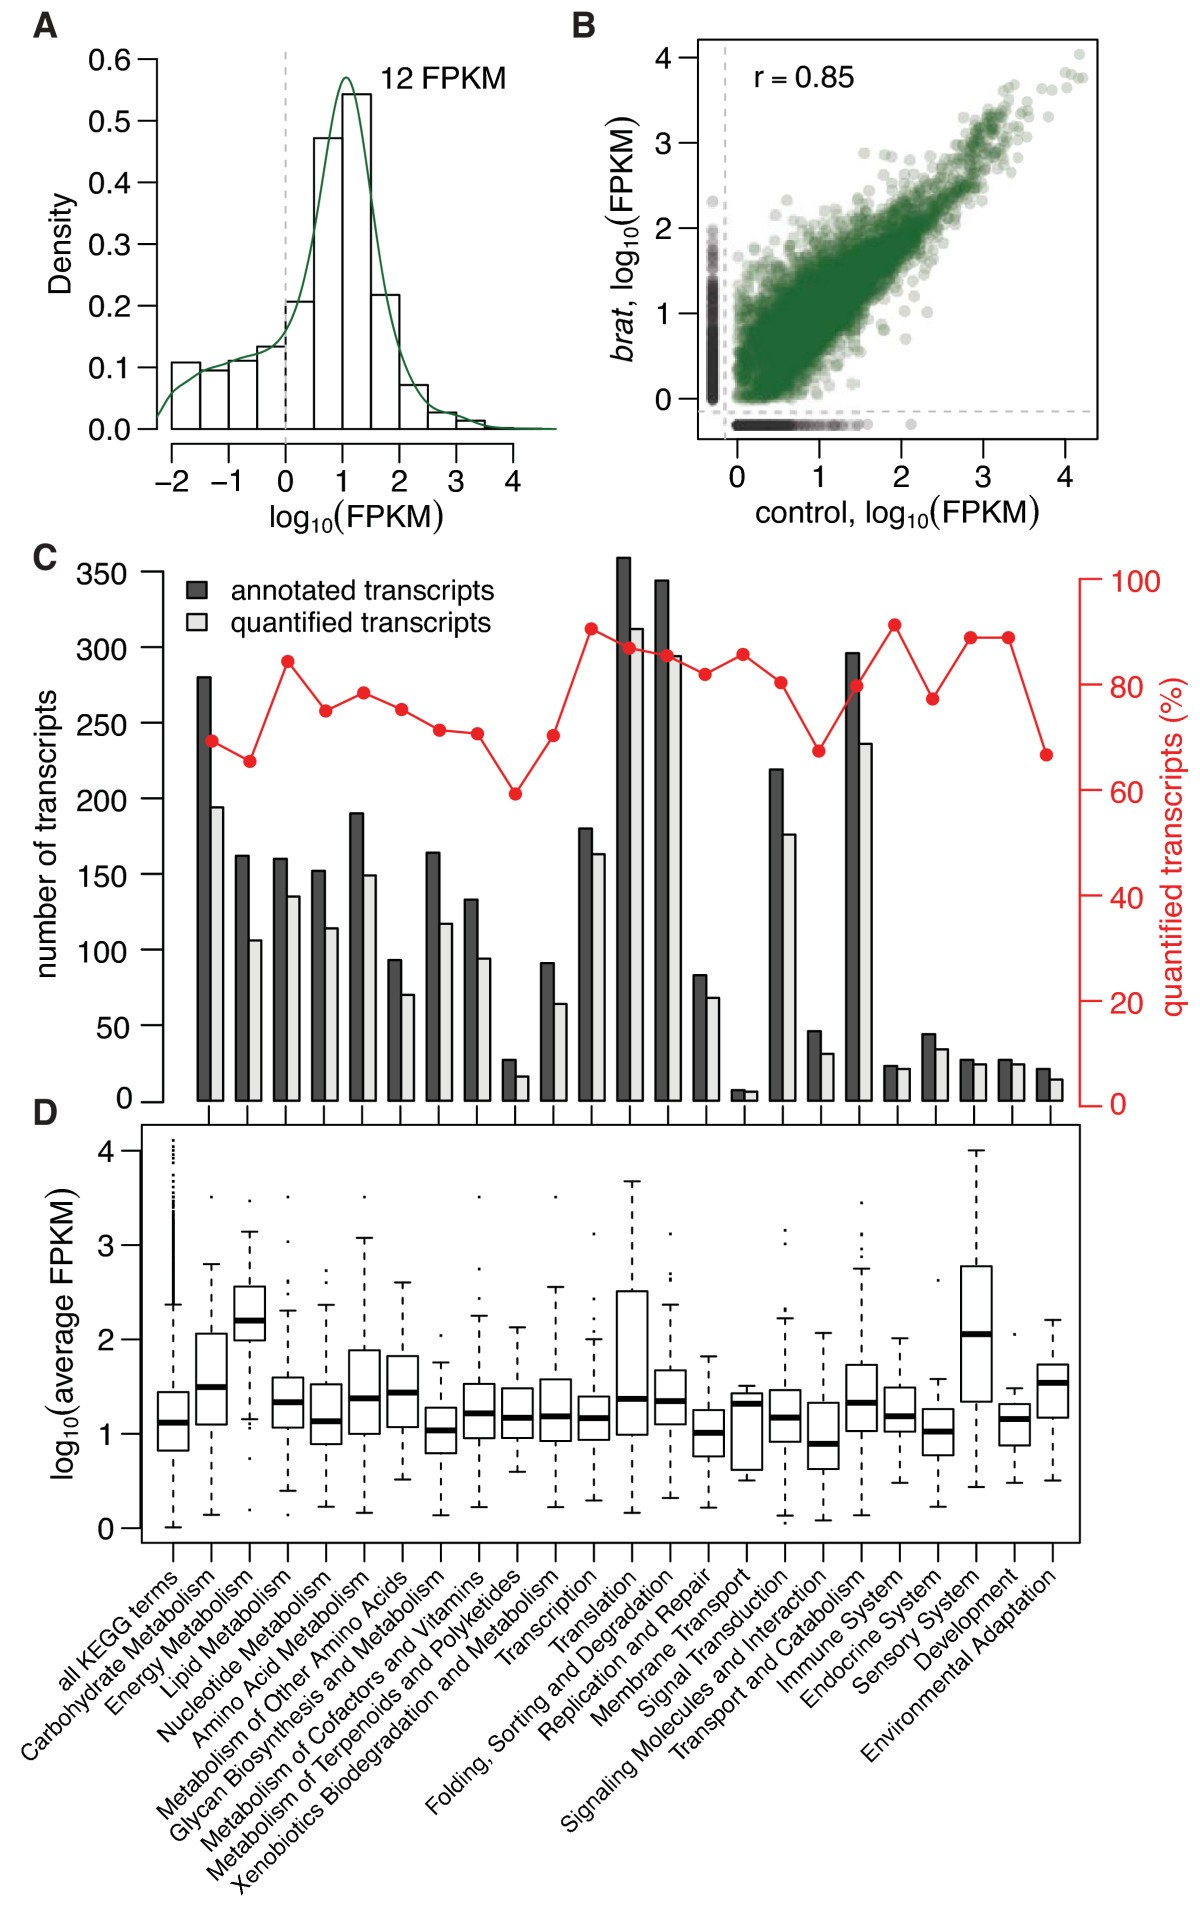 Transcriptome And Proteome Quantification Of A Tumor Model Provides Http Circuitdiagramorg Automaticnimhbatterychargercircuithtml Figure 2